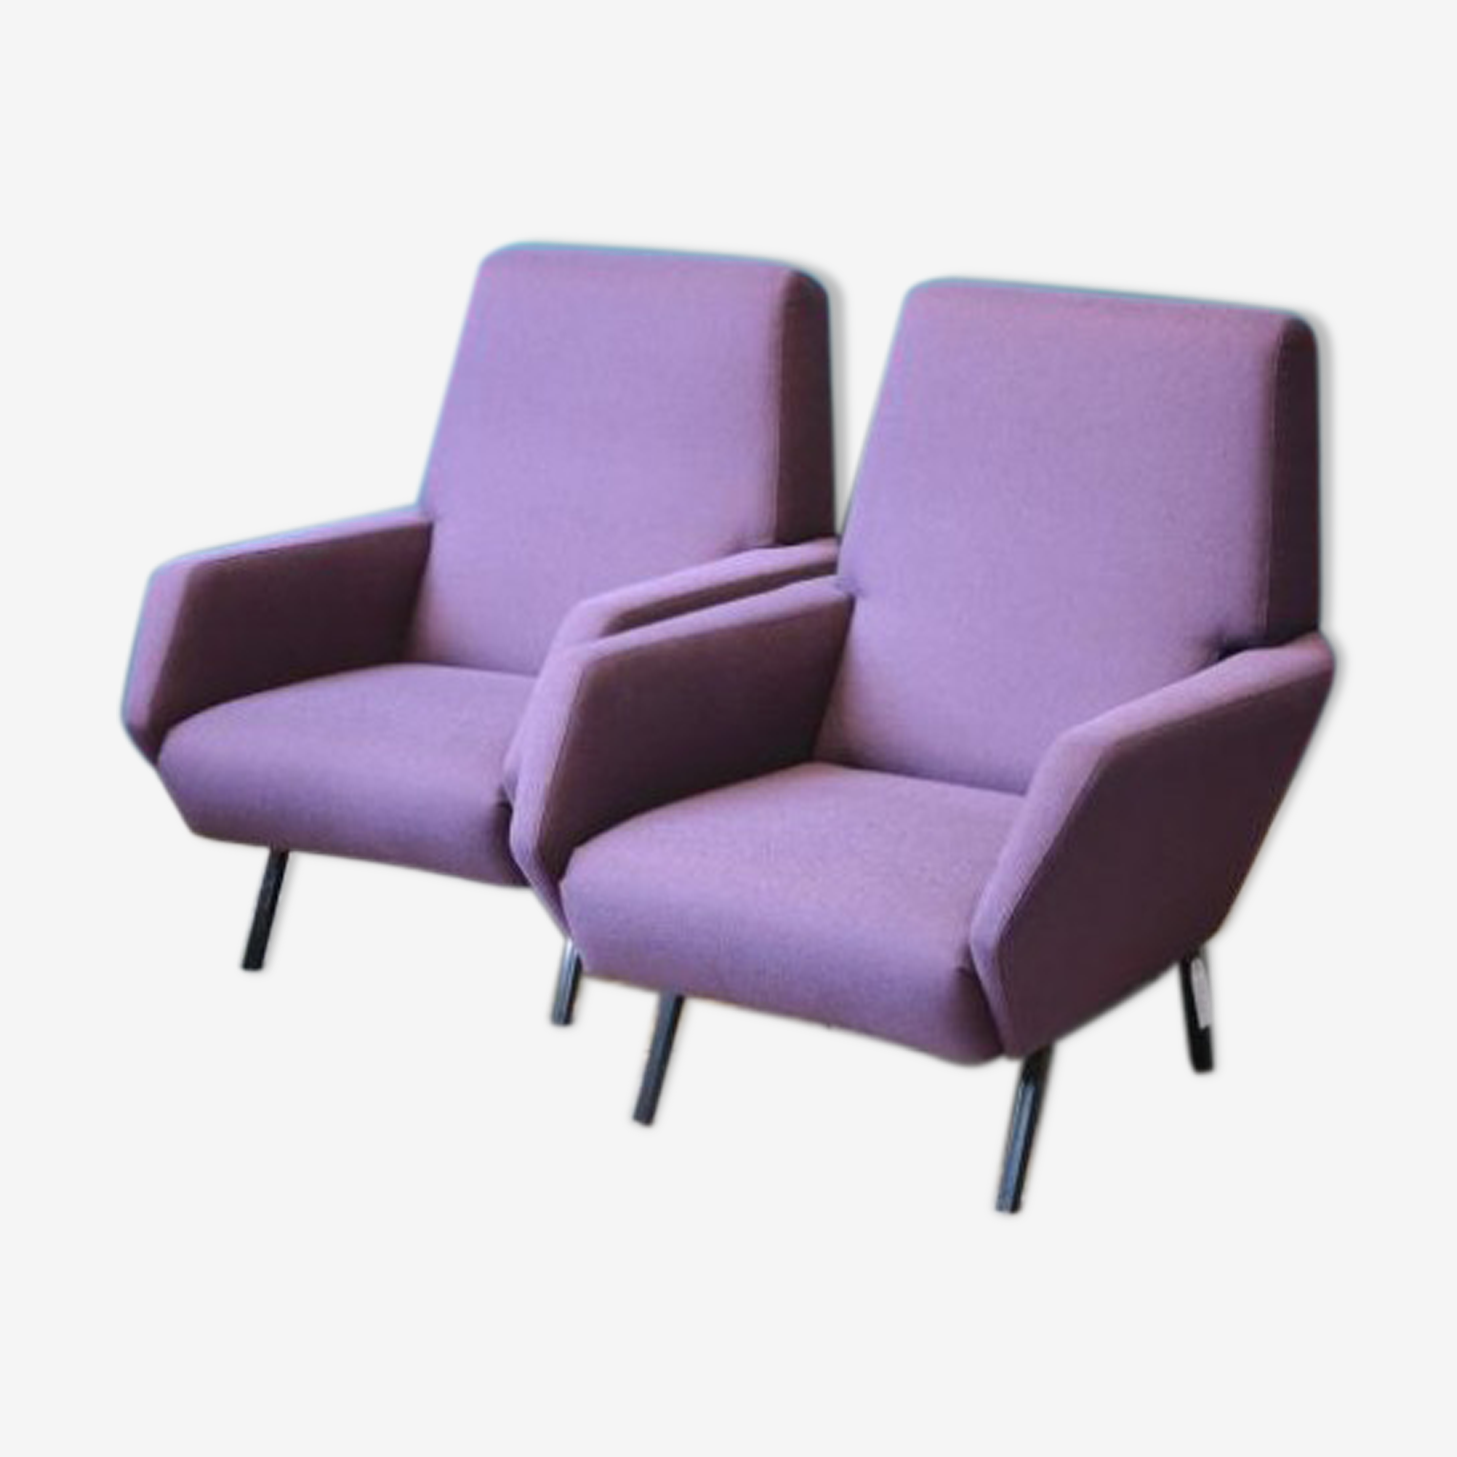 Pair of purple chairs, Italy, 1960 s